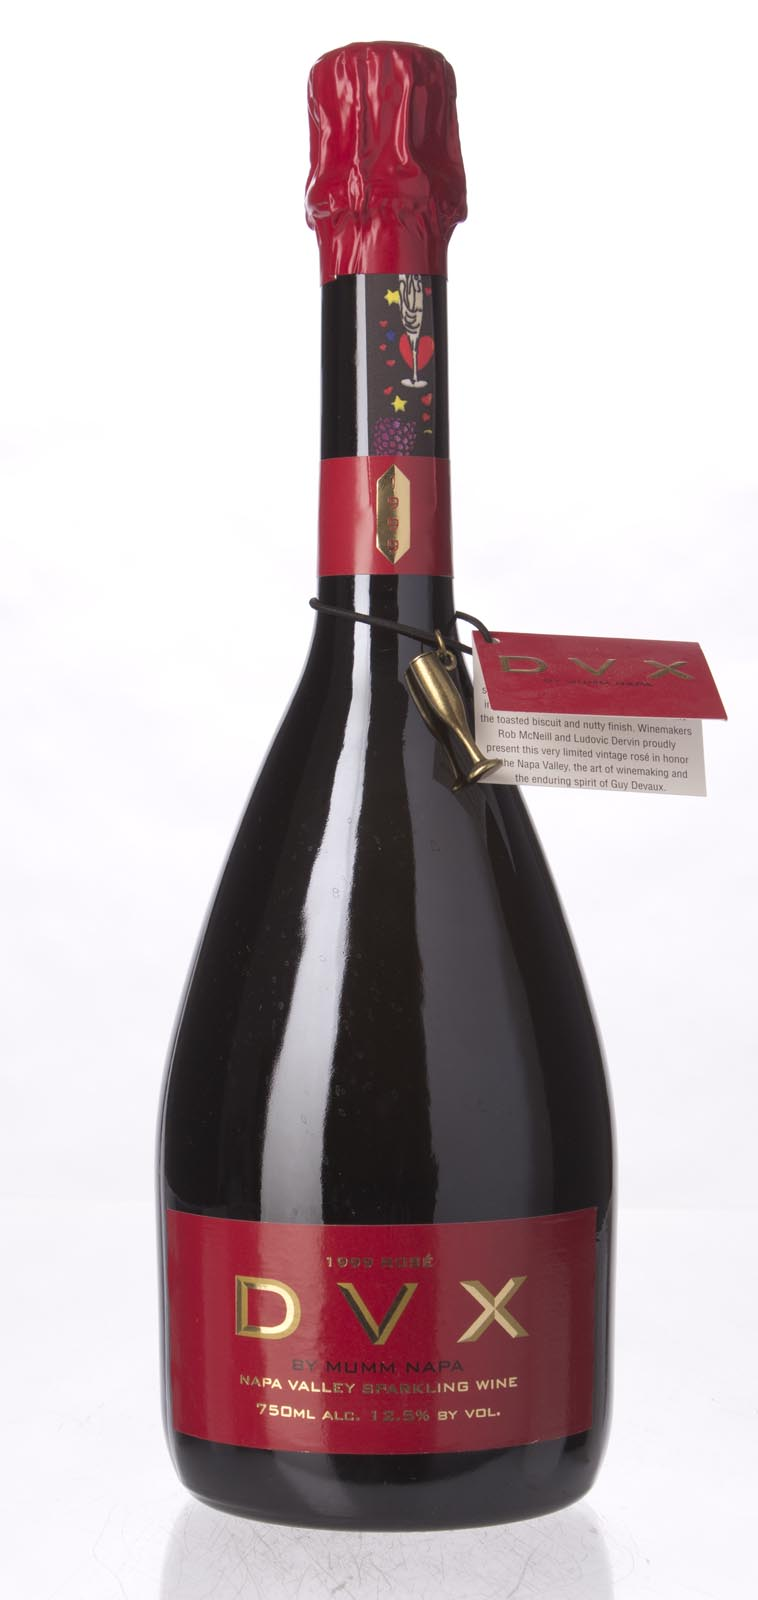 Mumm Cuvee Napa DVX Rose 1999, 750mL () from The BPW - Merchants of rare and fine wines.